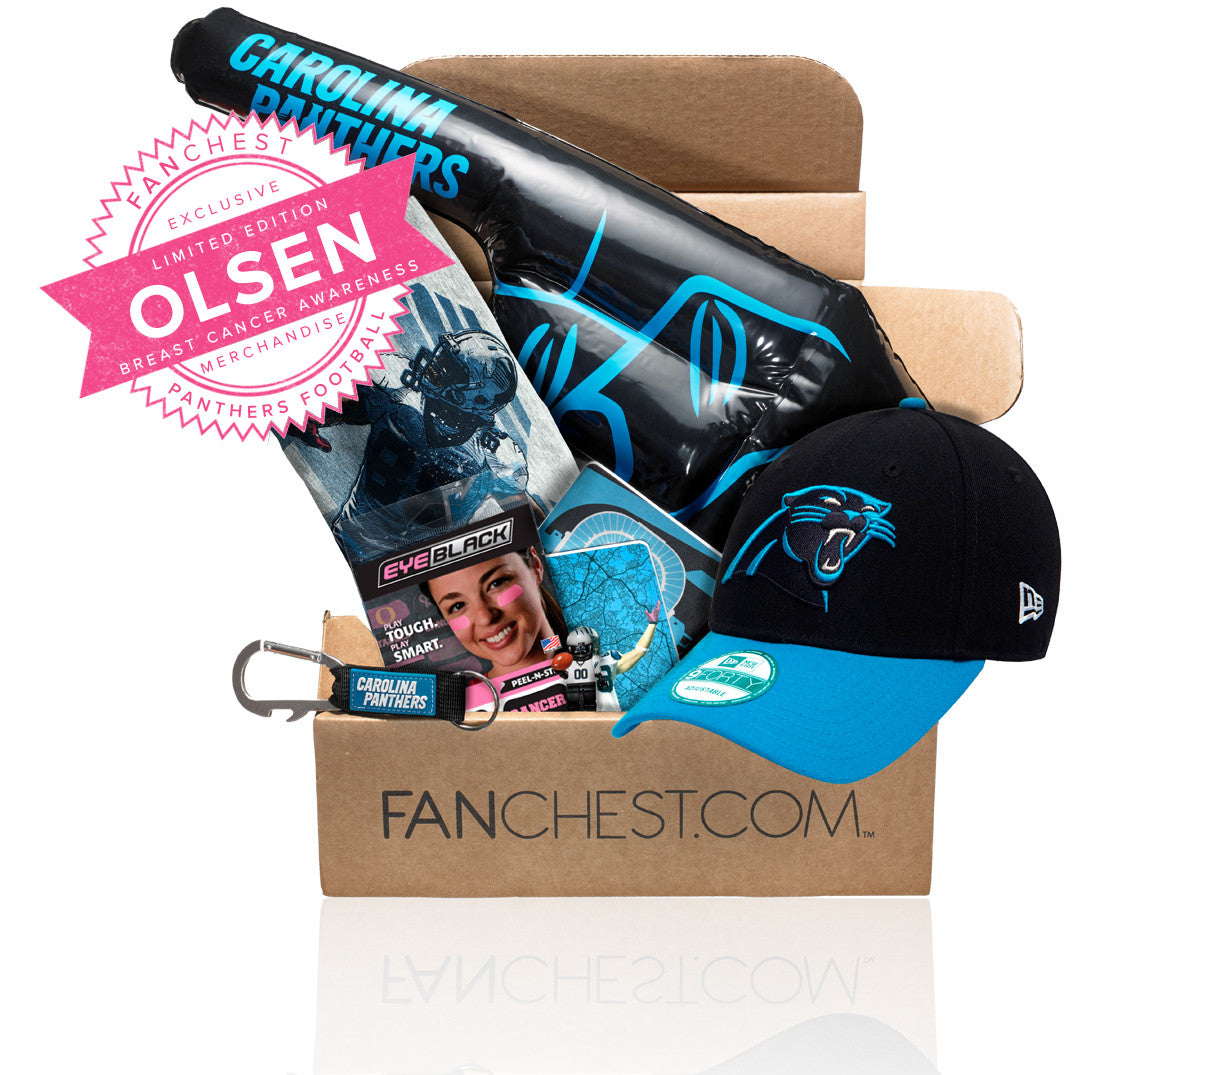 Olsen Limited Edition FANCHEST